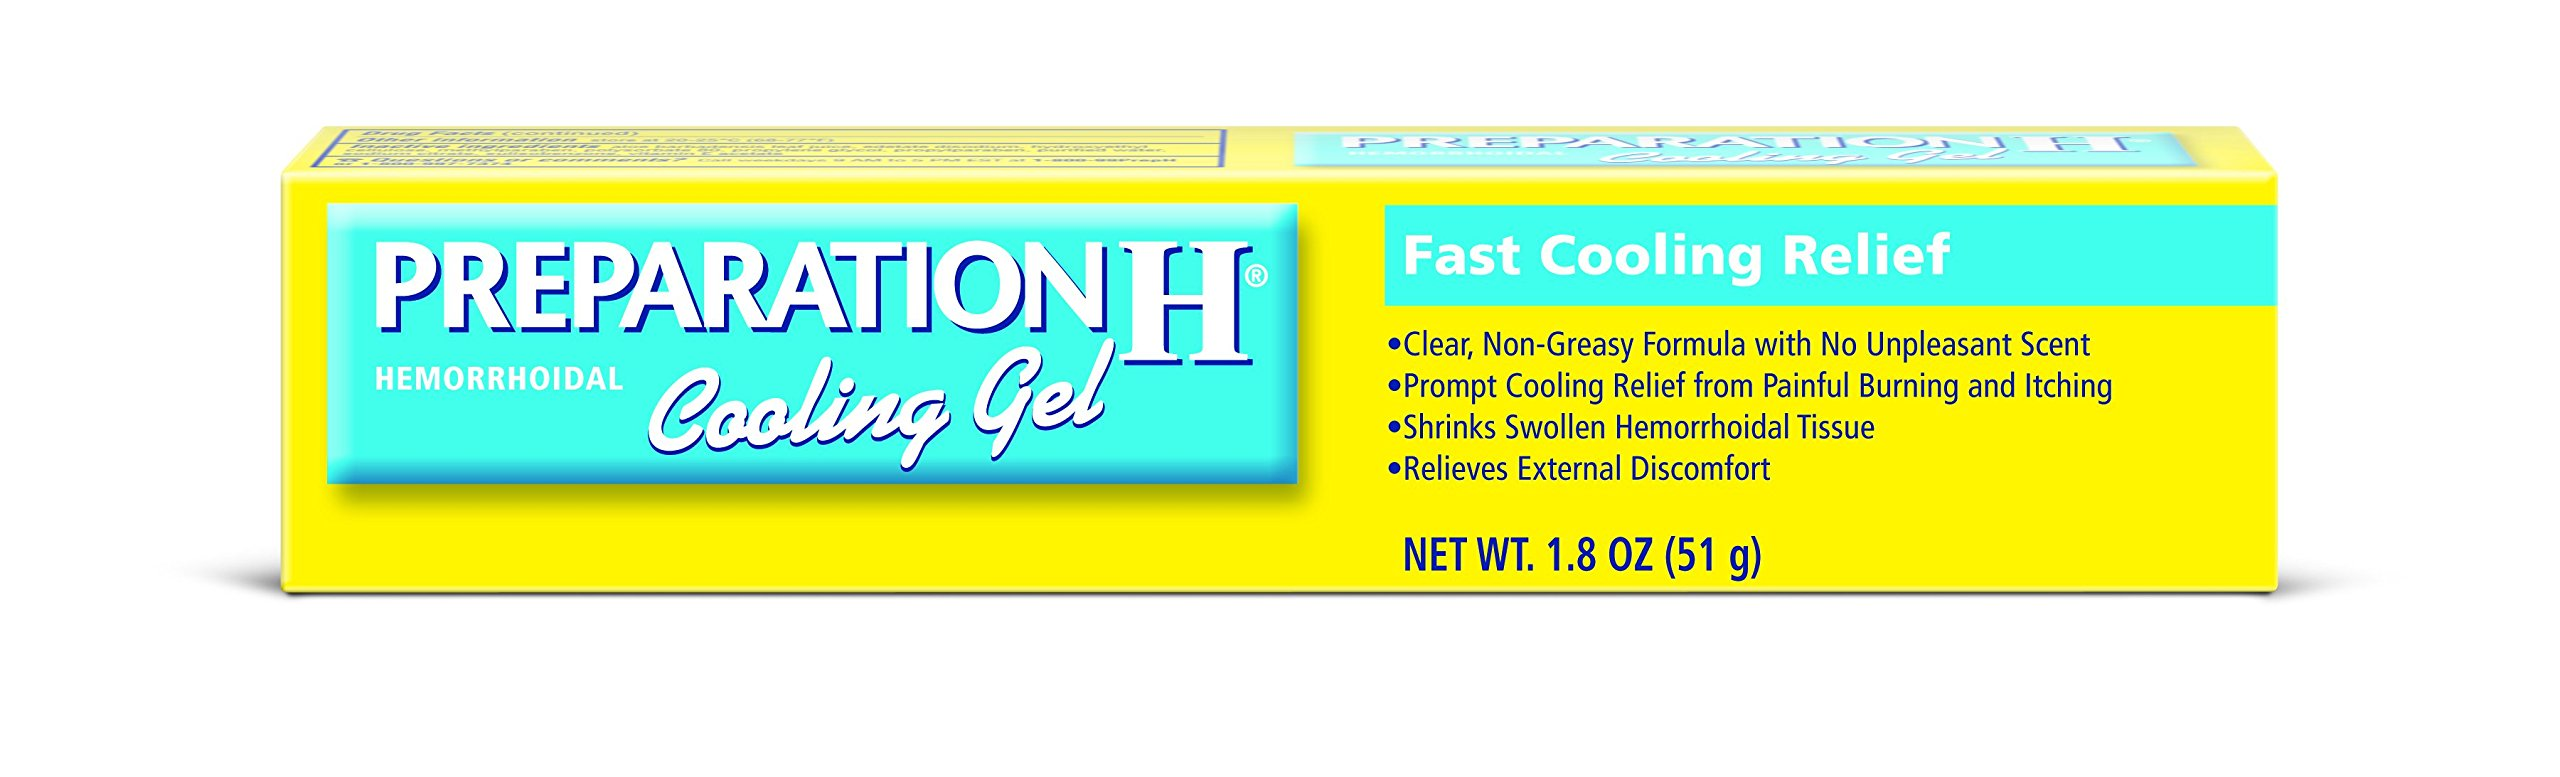 Preparation H Hemorrhoidal Cooling Gel For Fast Relief With Vitamin E And Aloe Tube (1.8 Ounce)